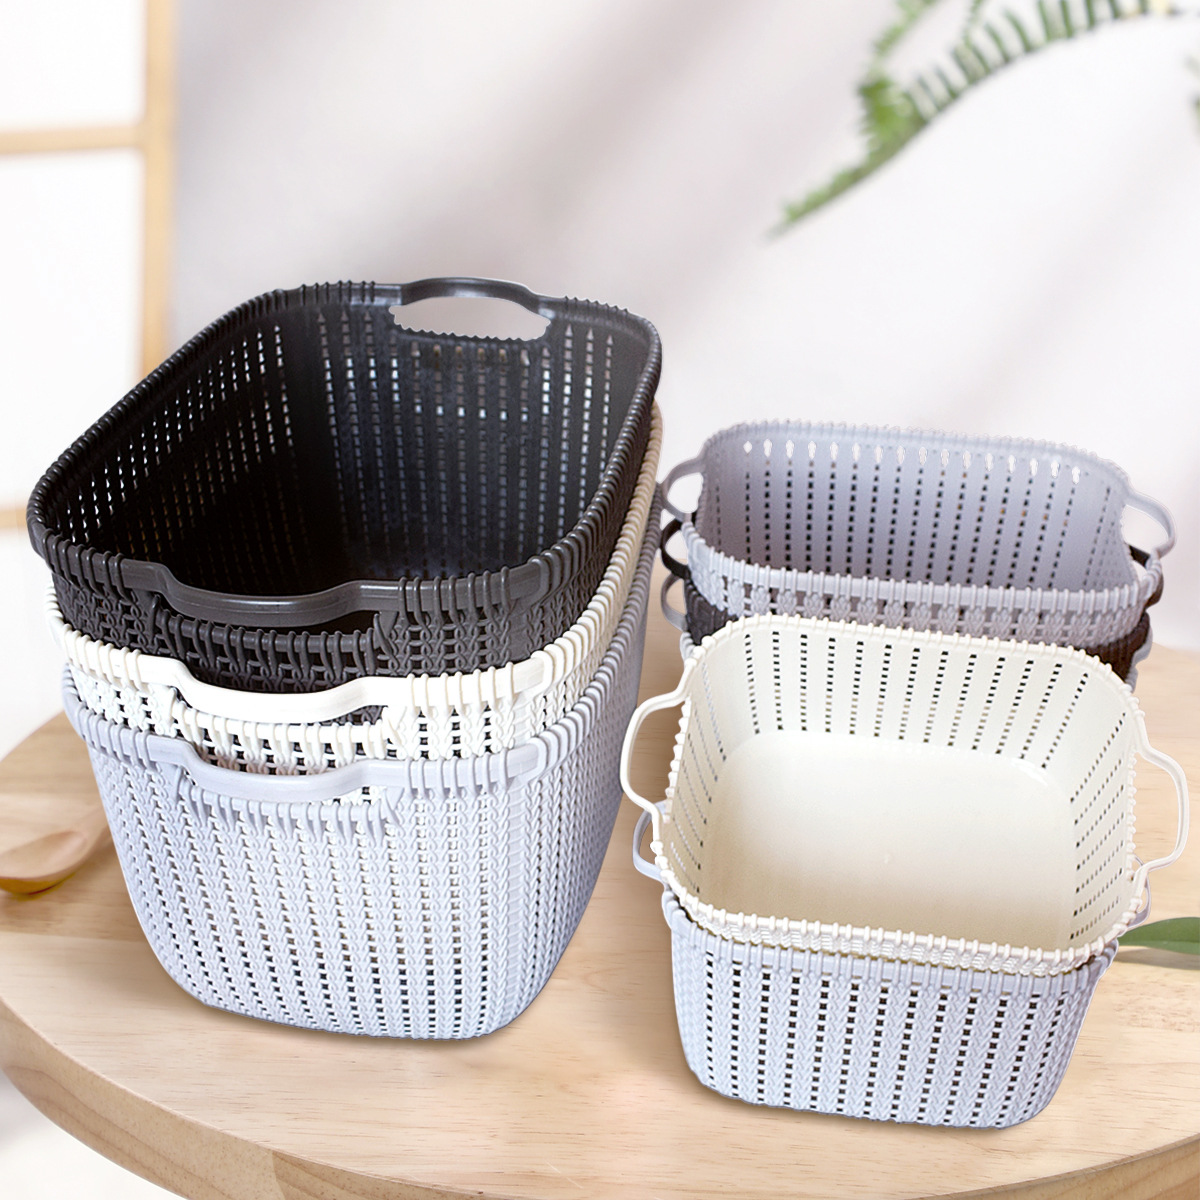 Household Hollow Plastic Storage Box for Storing Kitchen Snacks and Closet Organizer